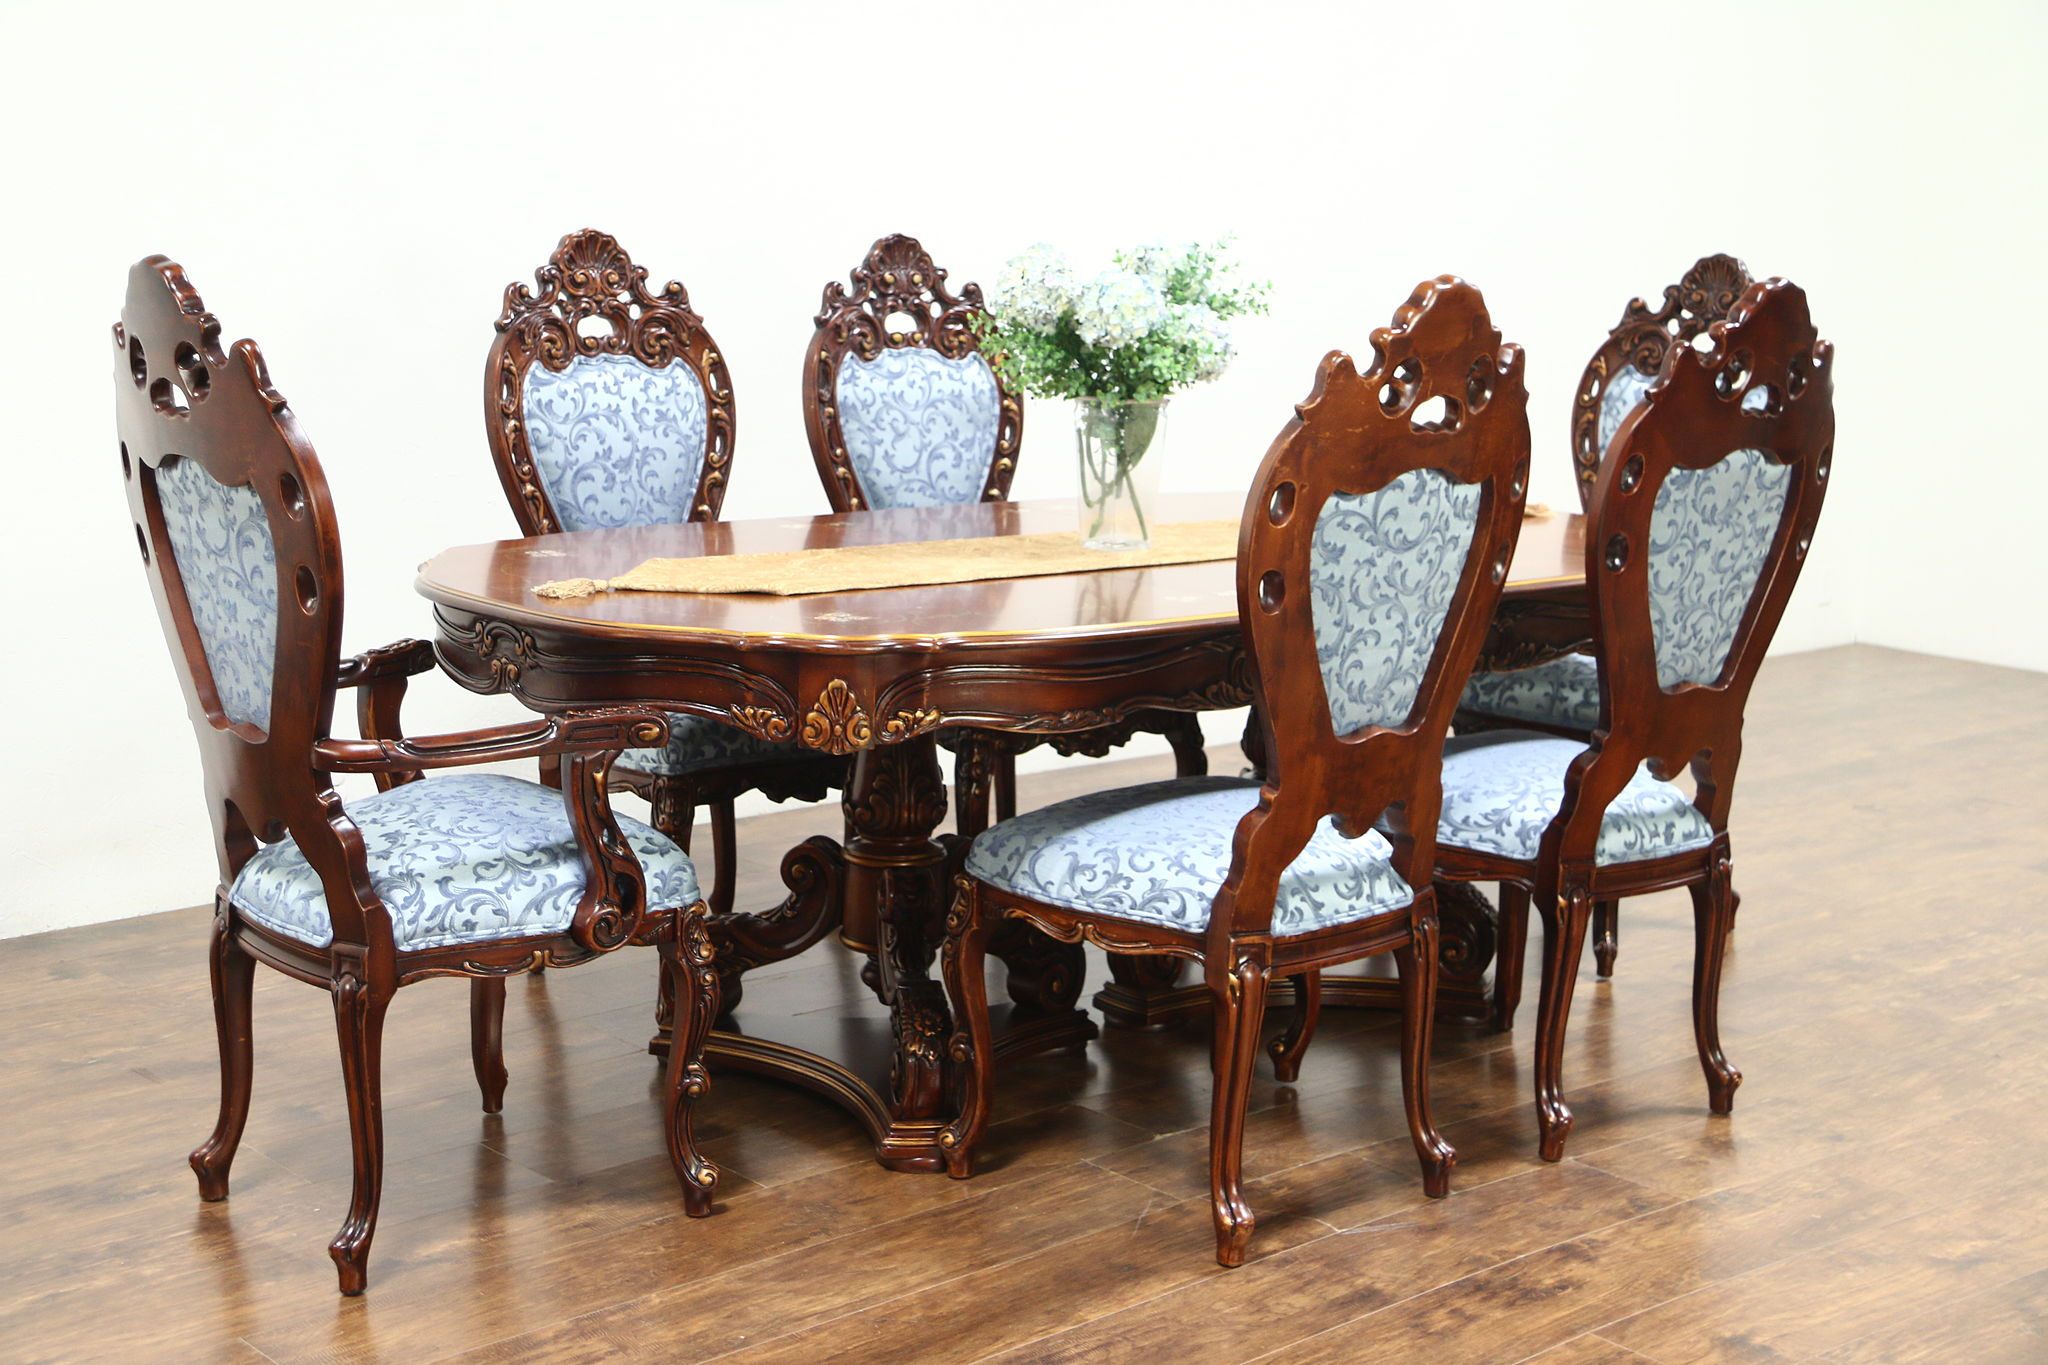 6 chair dining set cover rentals kingston baroque carved cherry vintage table chairs signed montalban harp gallery